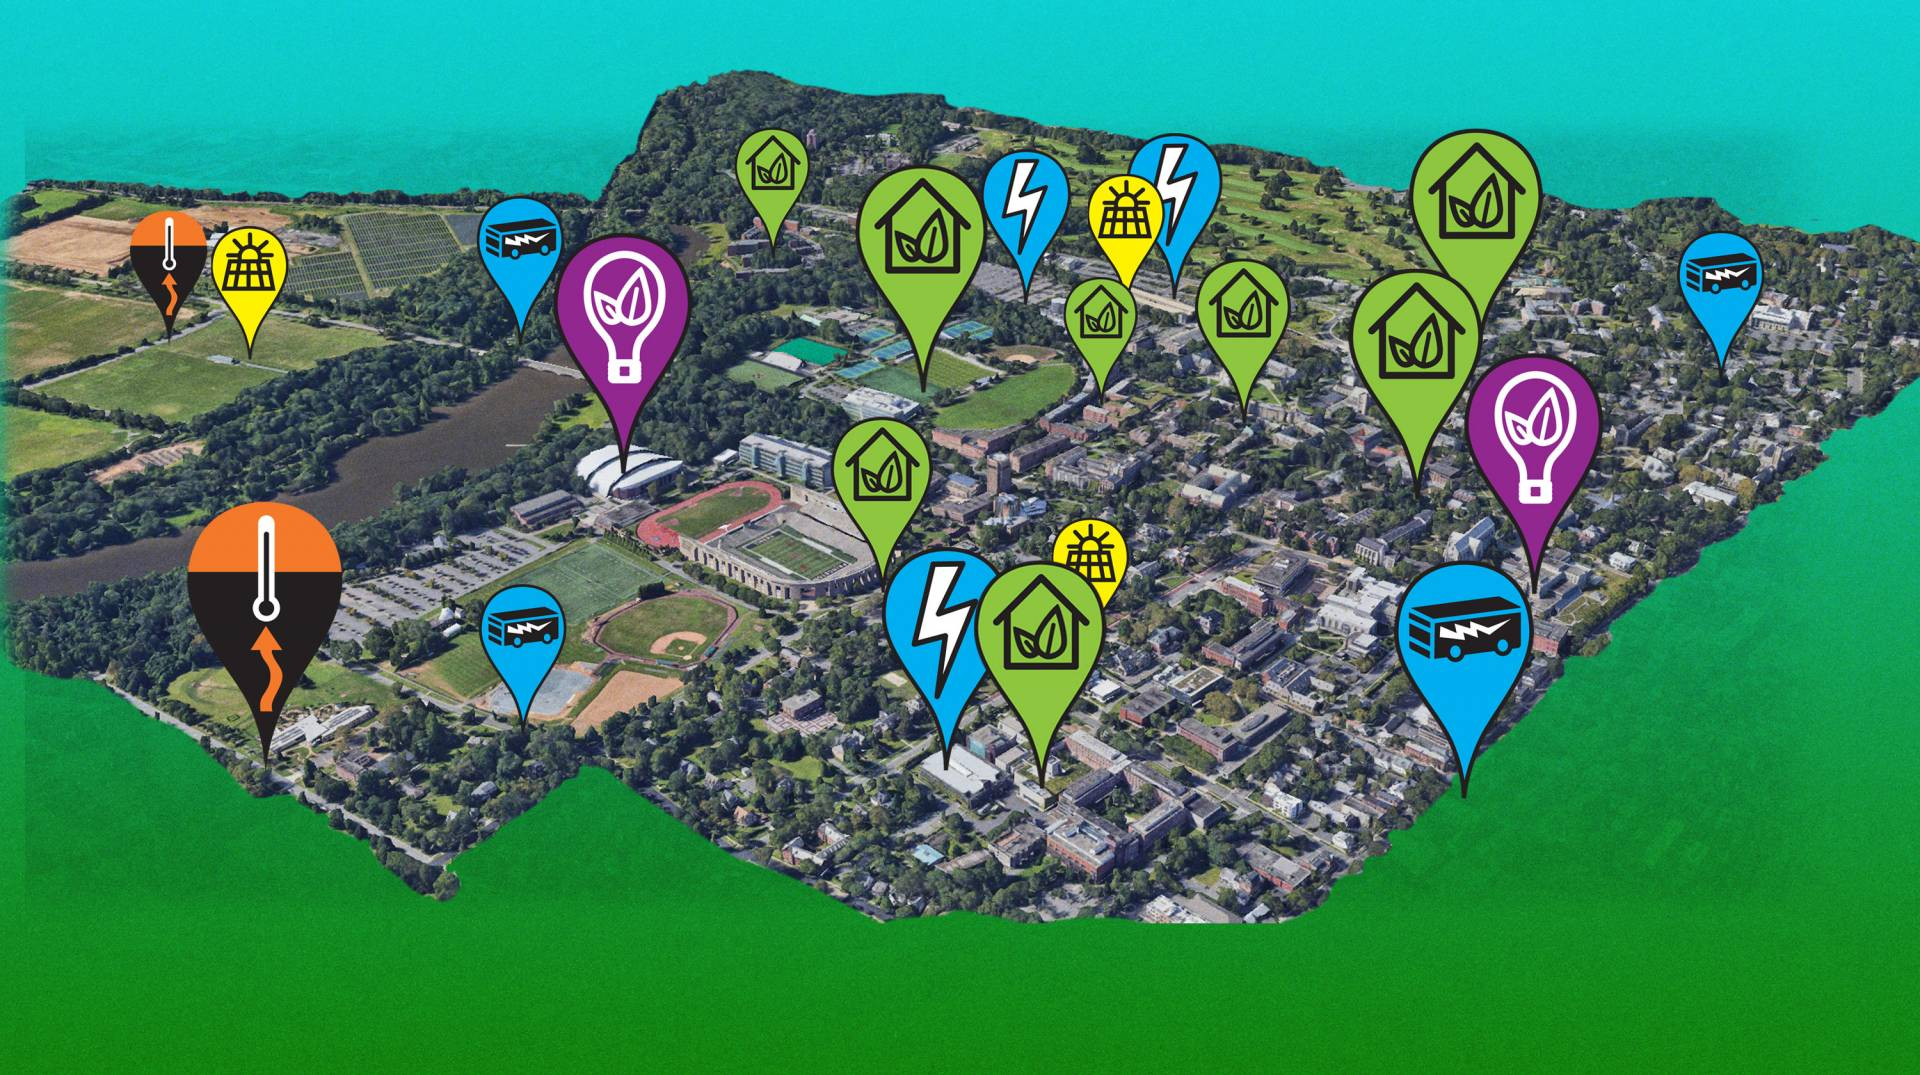 Aerial of campus with icons and map markers denoting the sustainable projects completed and underway